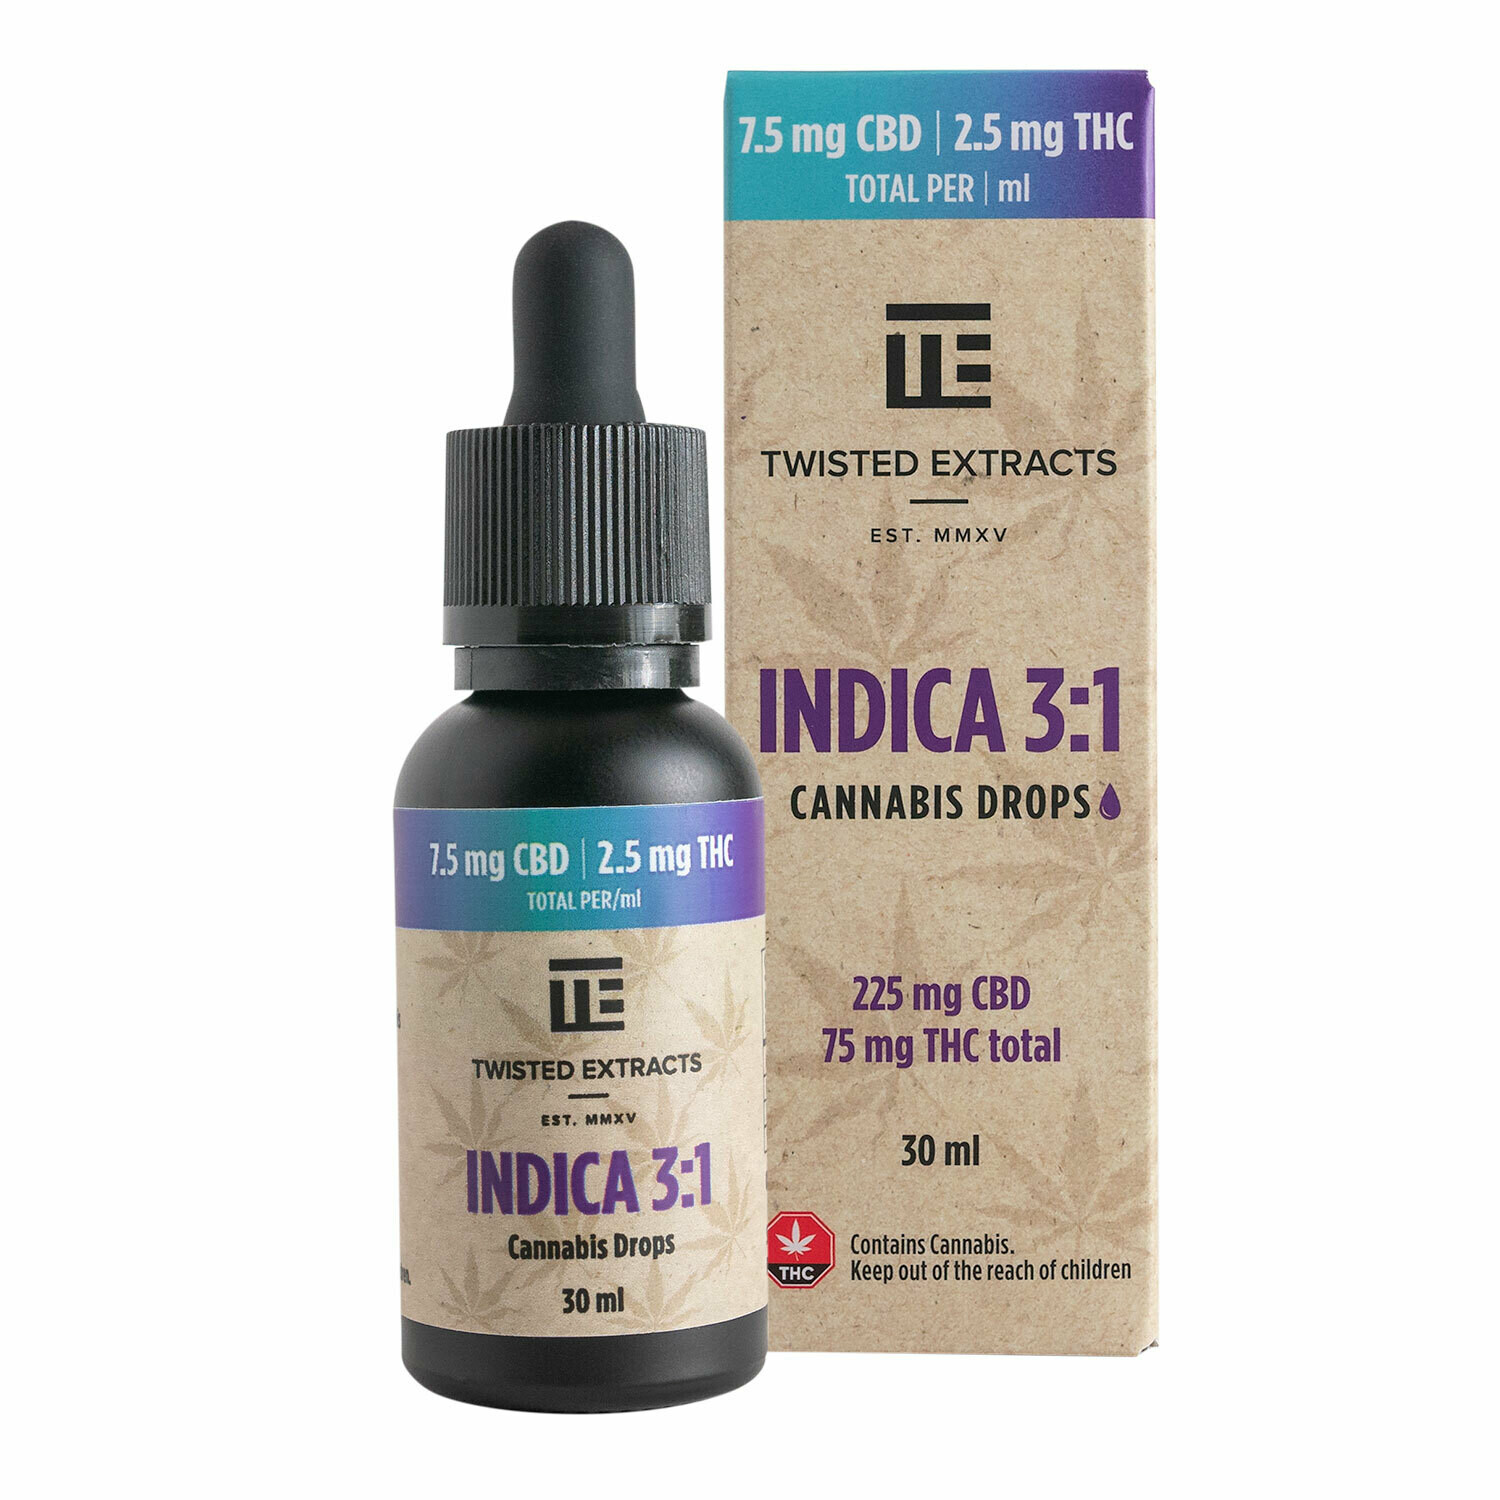 (225mg CBD + 75mg THC) Indica 3:1 Oil Drops By Twisted Extracts *** Now Orange Flavored ***